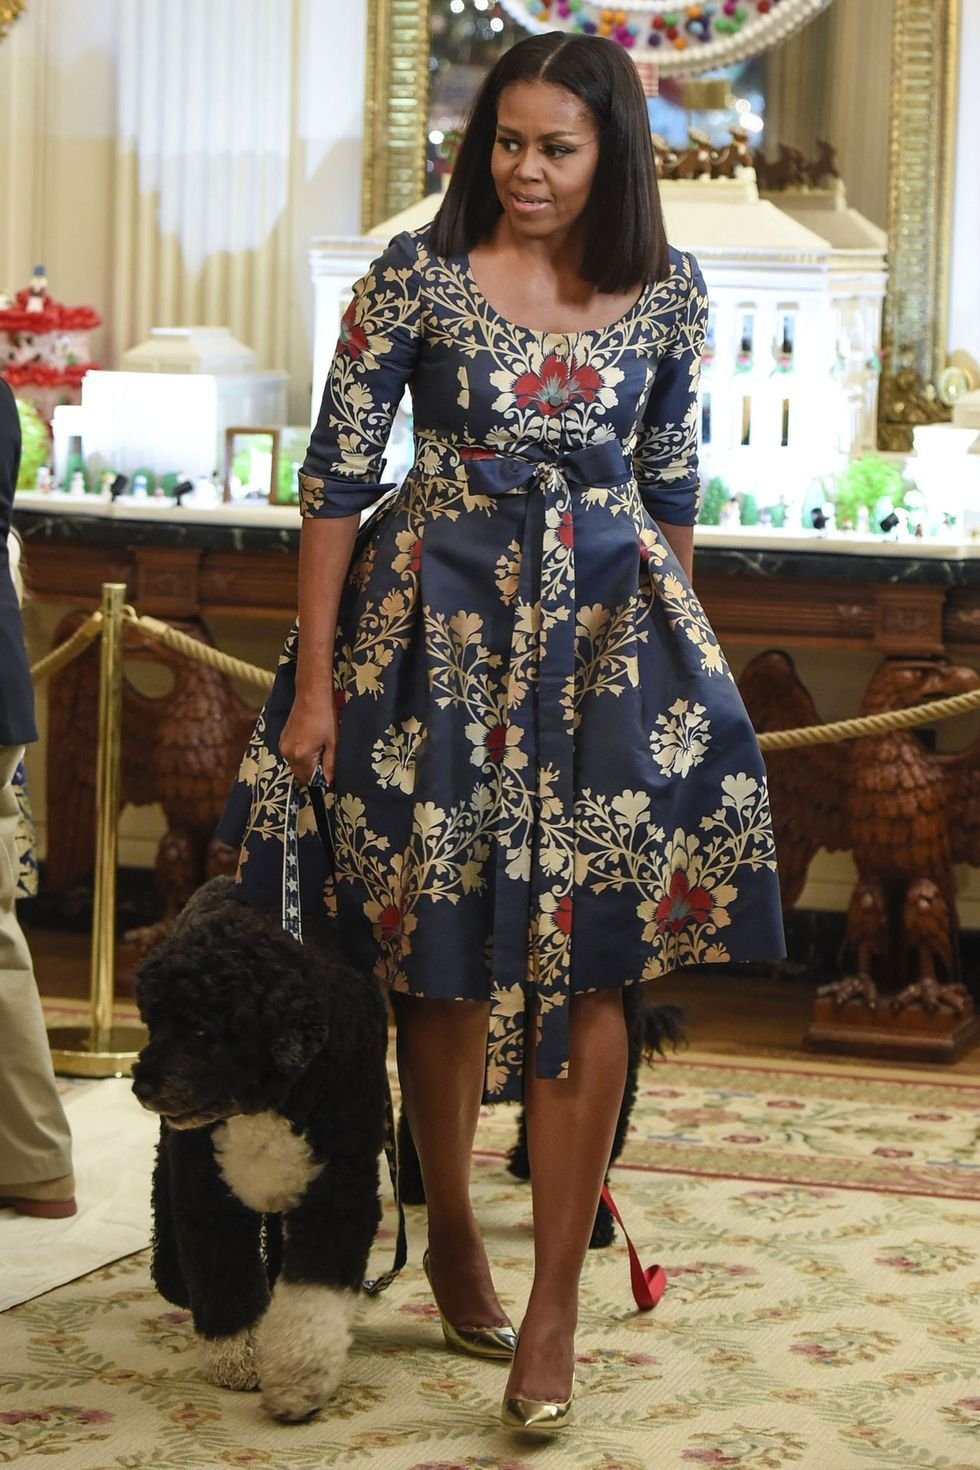 michelle obama style file glory pinterest robe africaine mode africaine et robe pagne